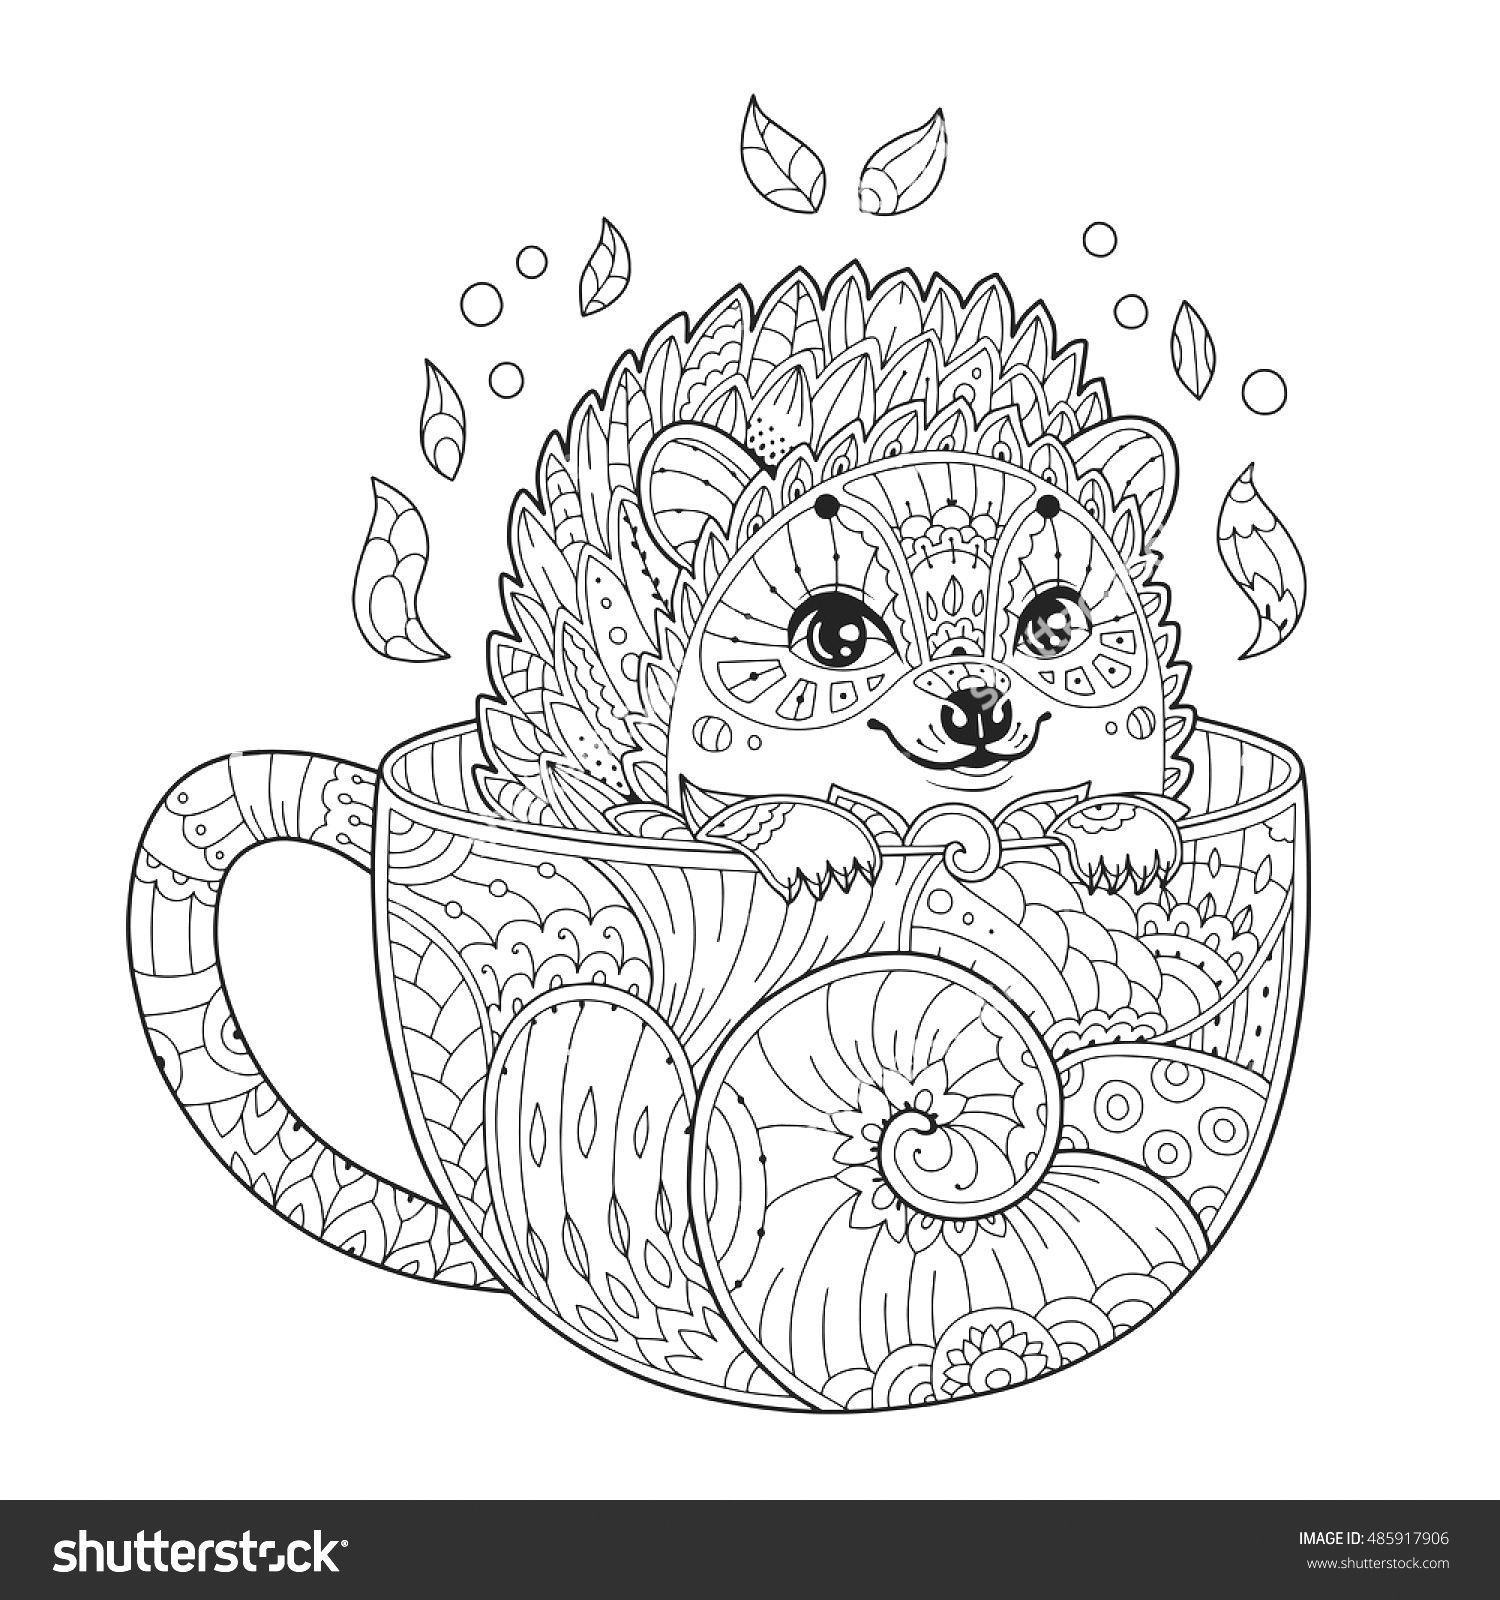 Hedgehog In A Tea Cup Animal Coloring Pages Coloring Pages